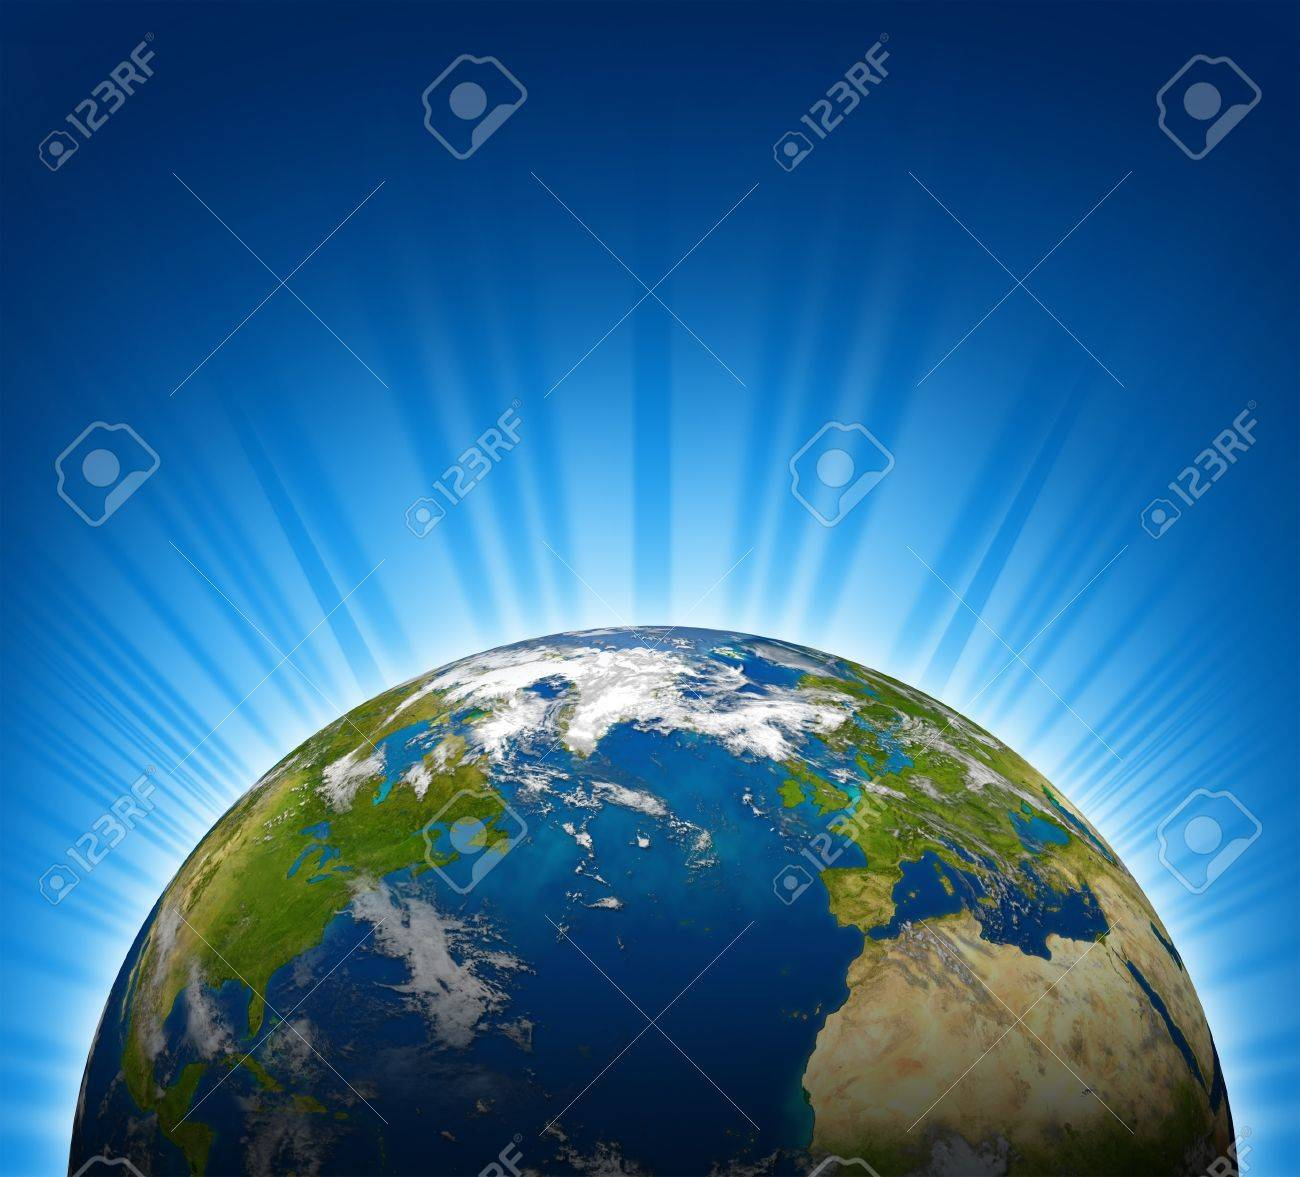 International view of North america and Europe on an Earth planet globe model with a bright radial blue background. Stock Photo - 10909941